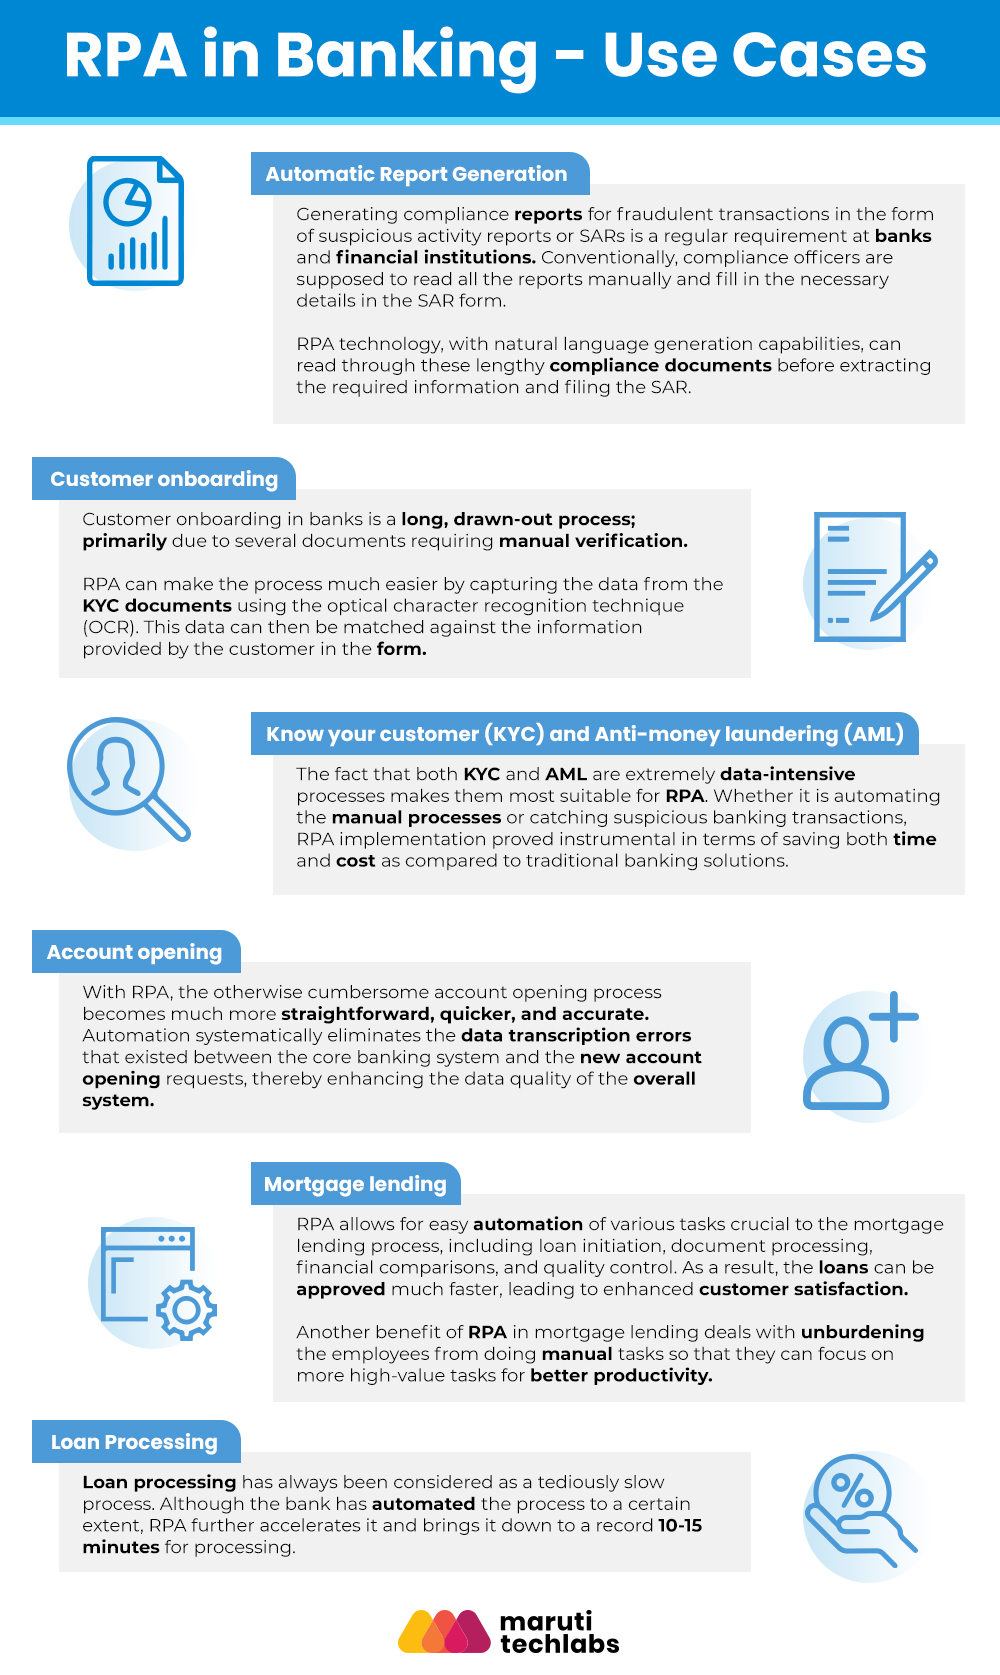 RPA in Banking Use Cases